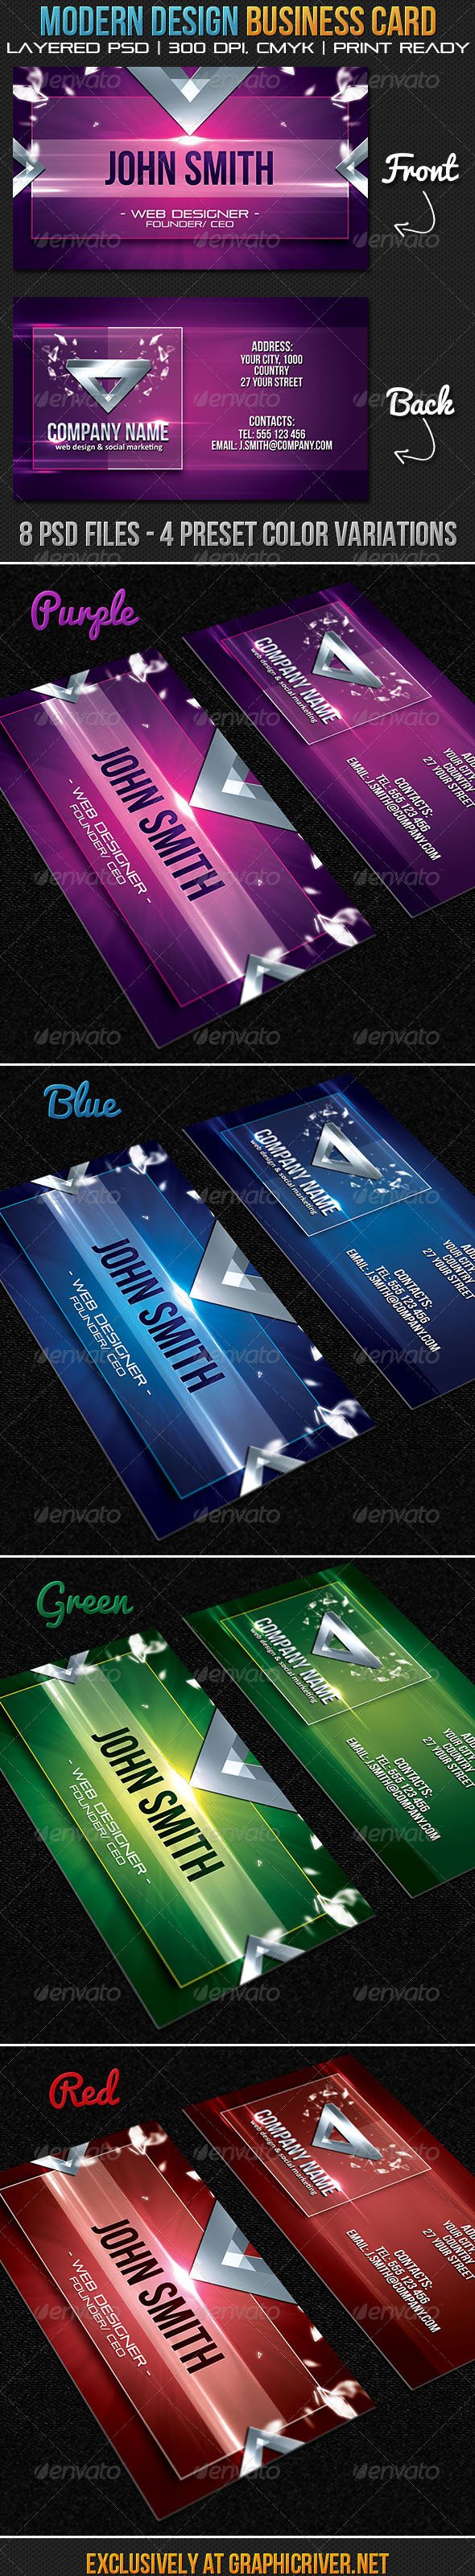 Modern Design Business Card - Creative Business Cards